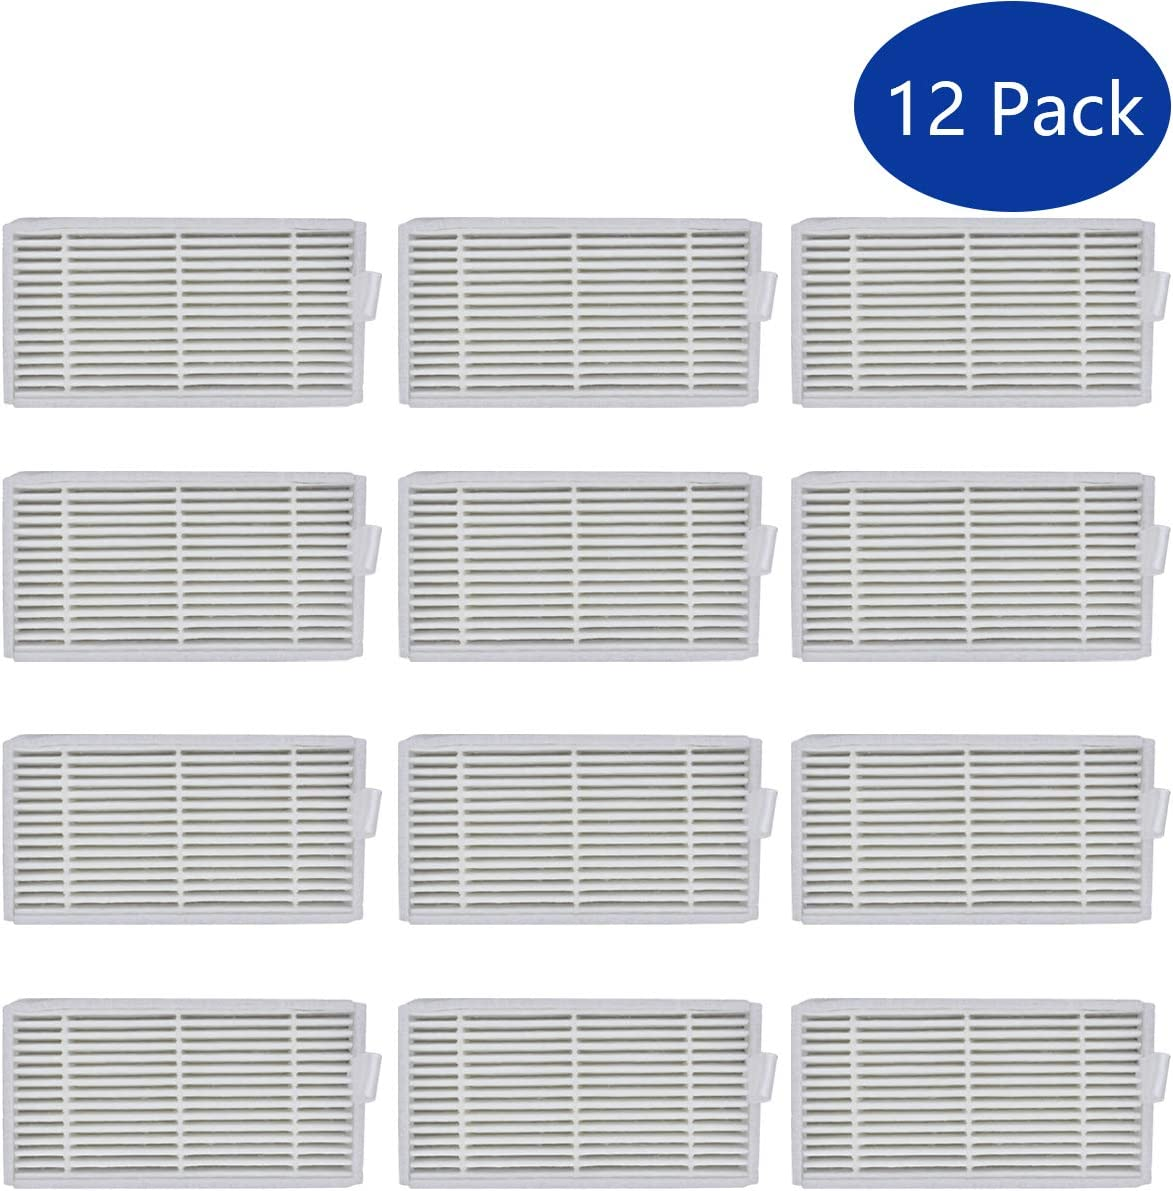 ApplianPar Pack of 12 Air Filter Replacement for Ilife V3s, V3s pro, V5 and V5s, V5s Pro Robotic Vacuum Cleaner